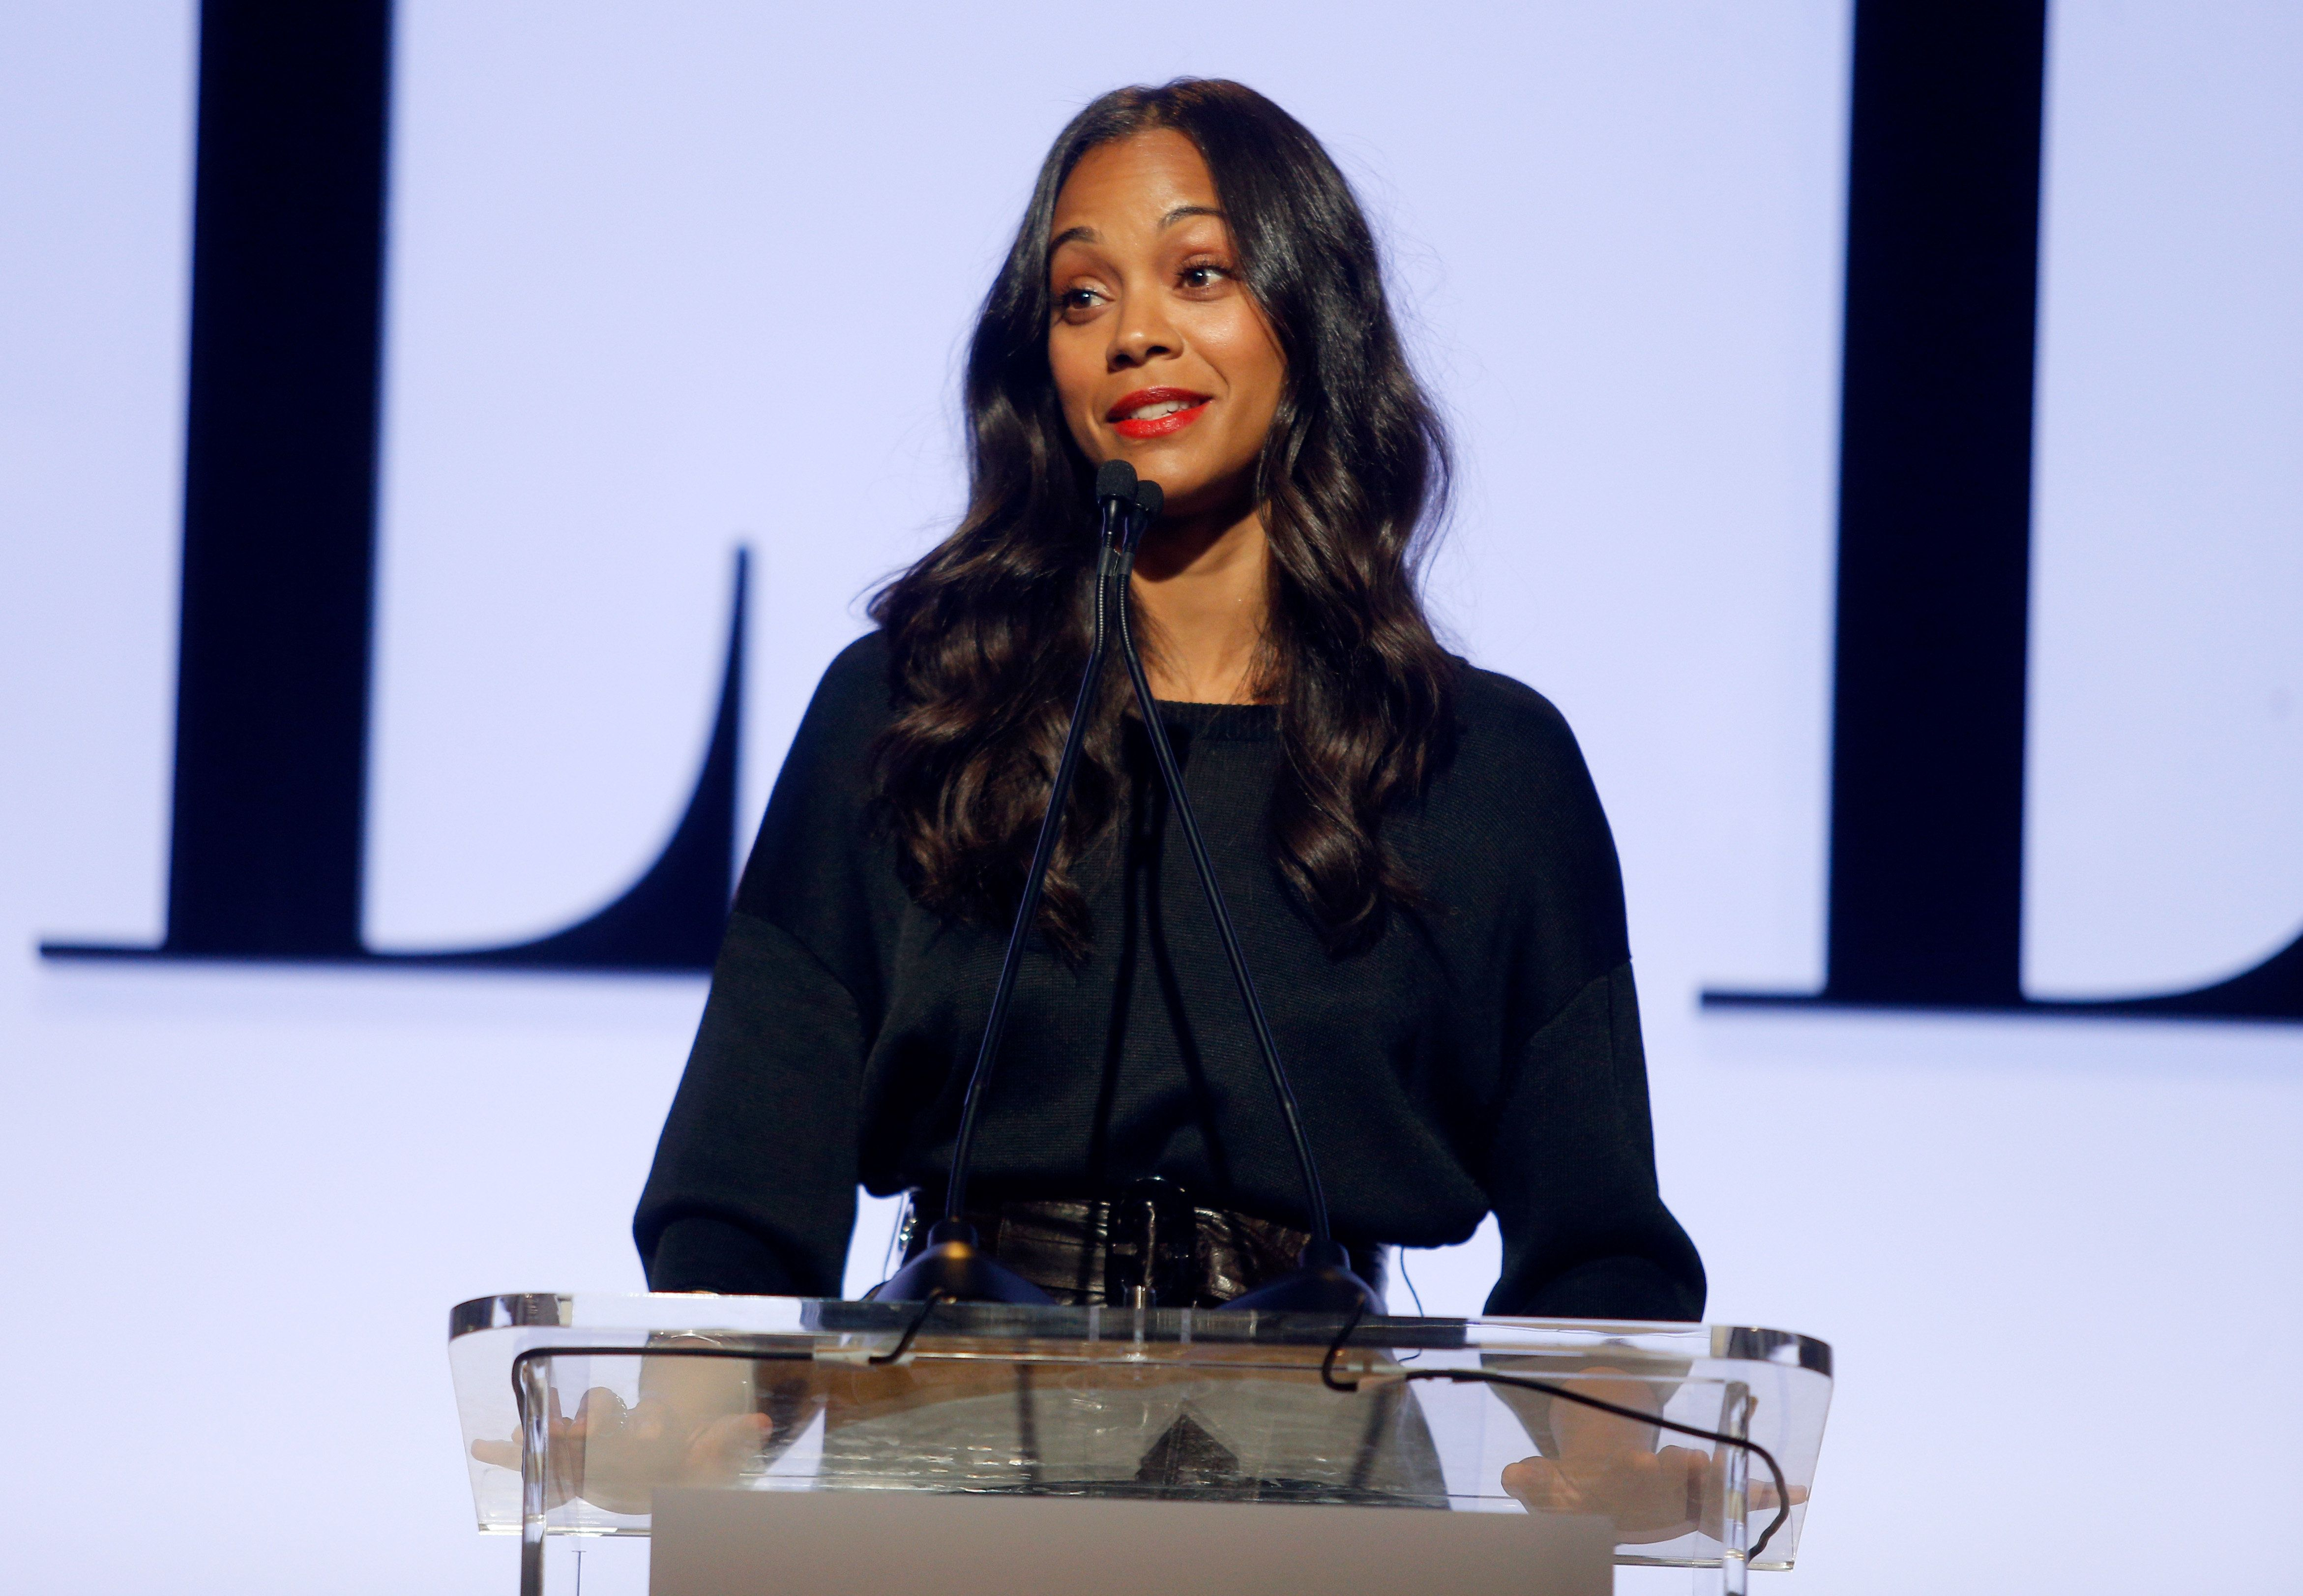 LOS ANGELES, CA - OCTOBER 19:  Actress Zoe Saldana speaks onstage during the 22nd Annual ELLE Women in Hollywood Awards presented by Calvin Klein Collection, L'Oréal Paris, and David Yurman at the Four Seasons Los Angeles at Beverly Hills on October 19, 2015 in Beverly Hills, California.  (Photo by Jeff Vespa/Getty Images for ELLE)